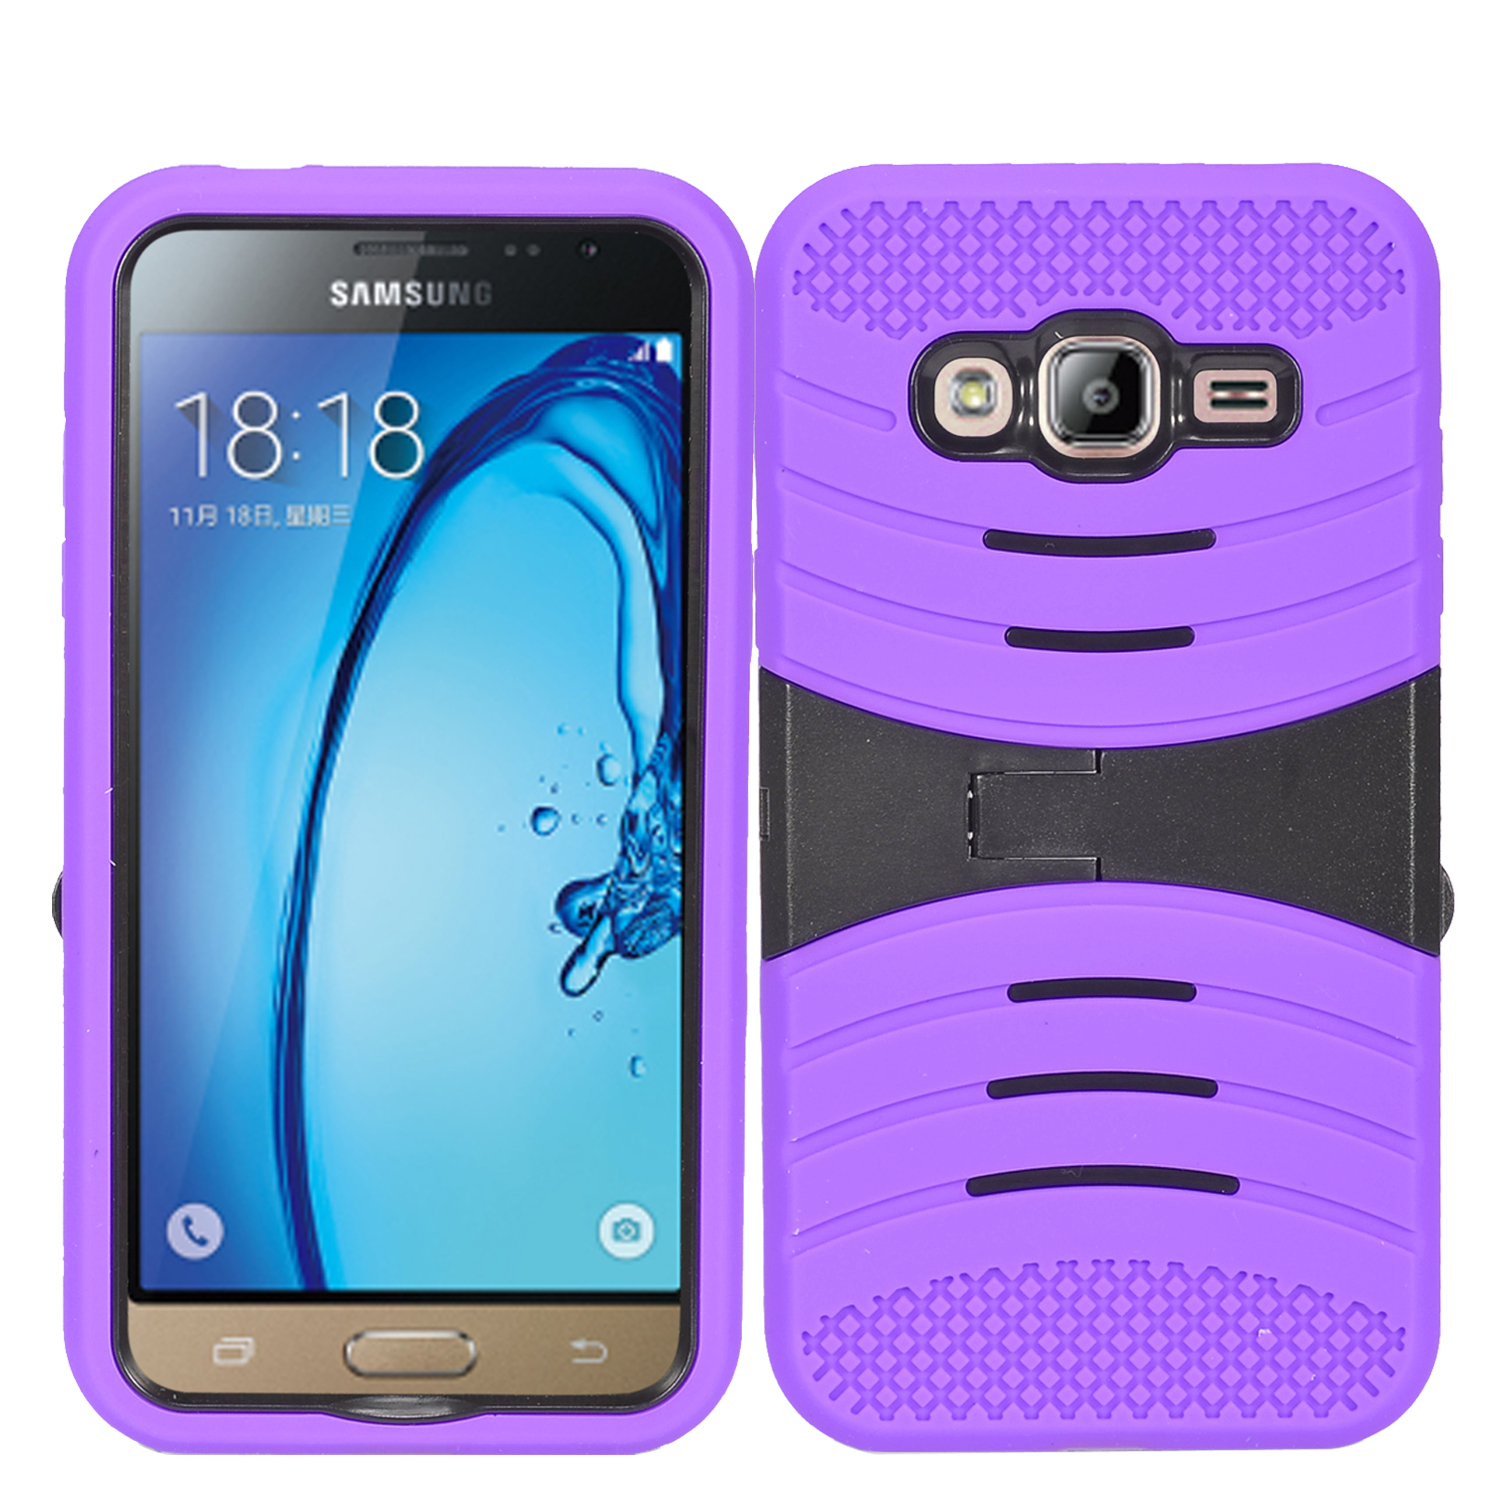 Zizo UCASE for Samsung Galaxy On5 G550 Hybrid Dual Layer w/ Silicon Rugged Shell Protective Phone Case Cover w/ Kickstand